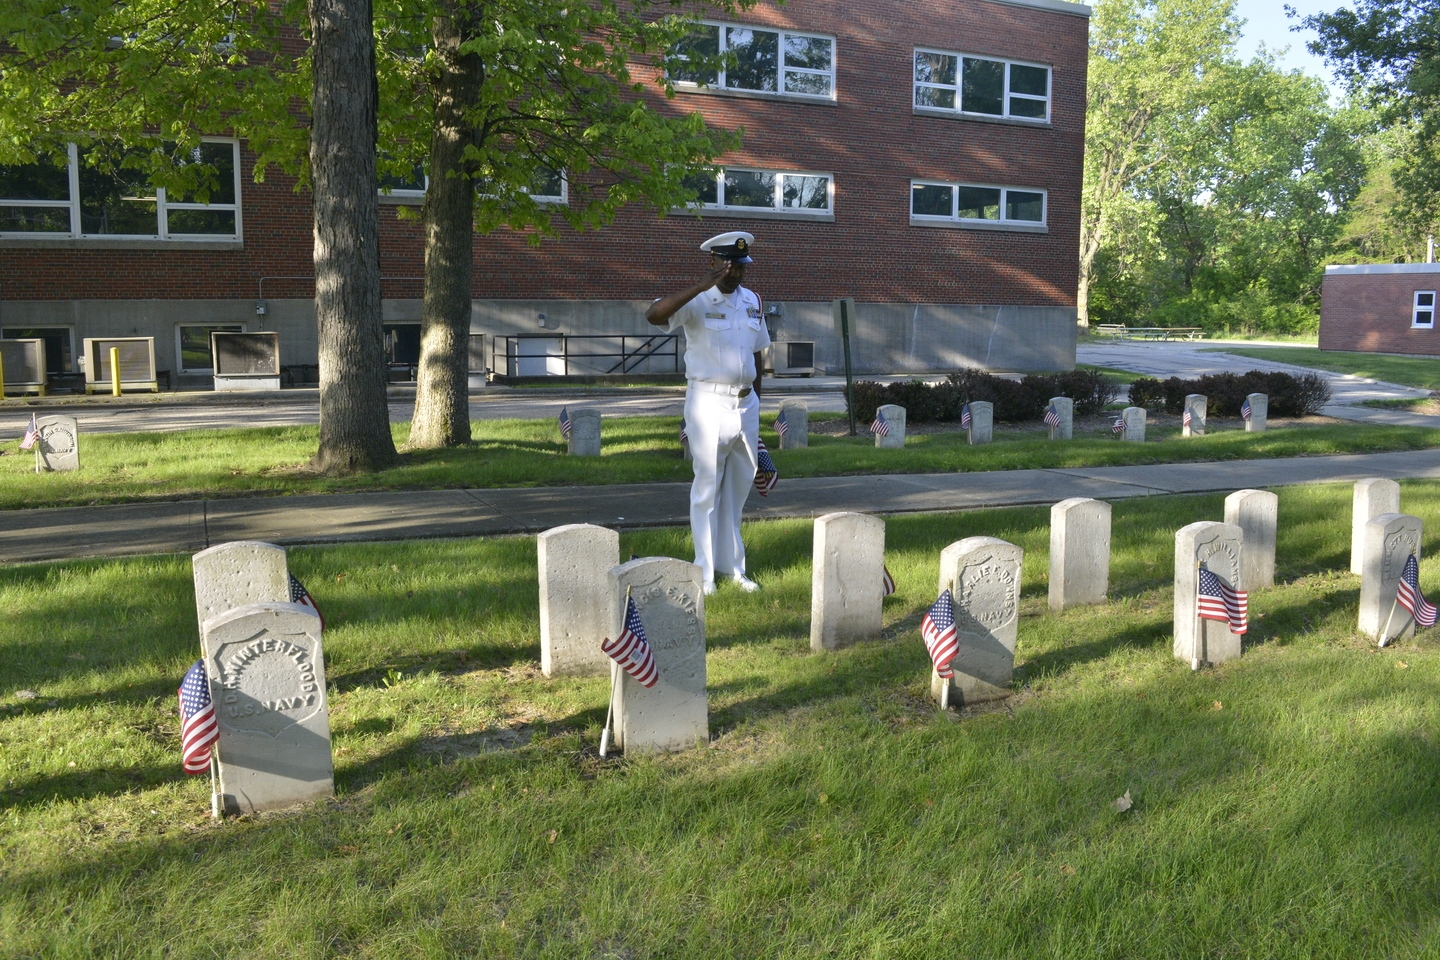 Member FCCM Gilling remembers our Sailors at Great Lakes Base.